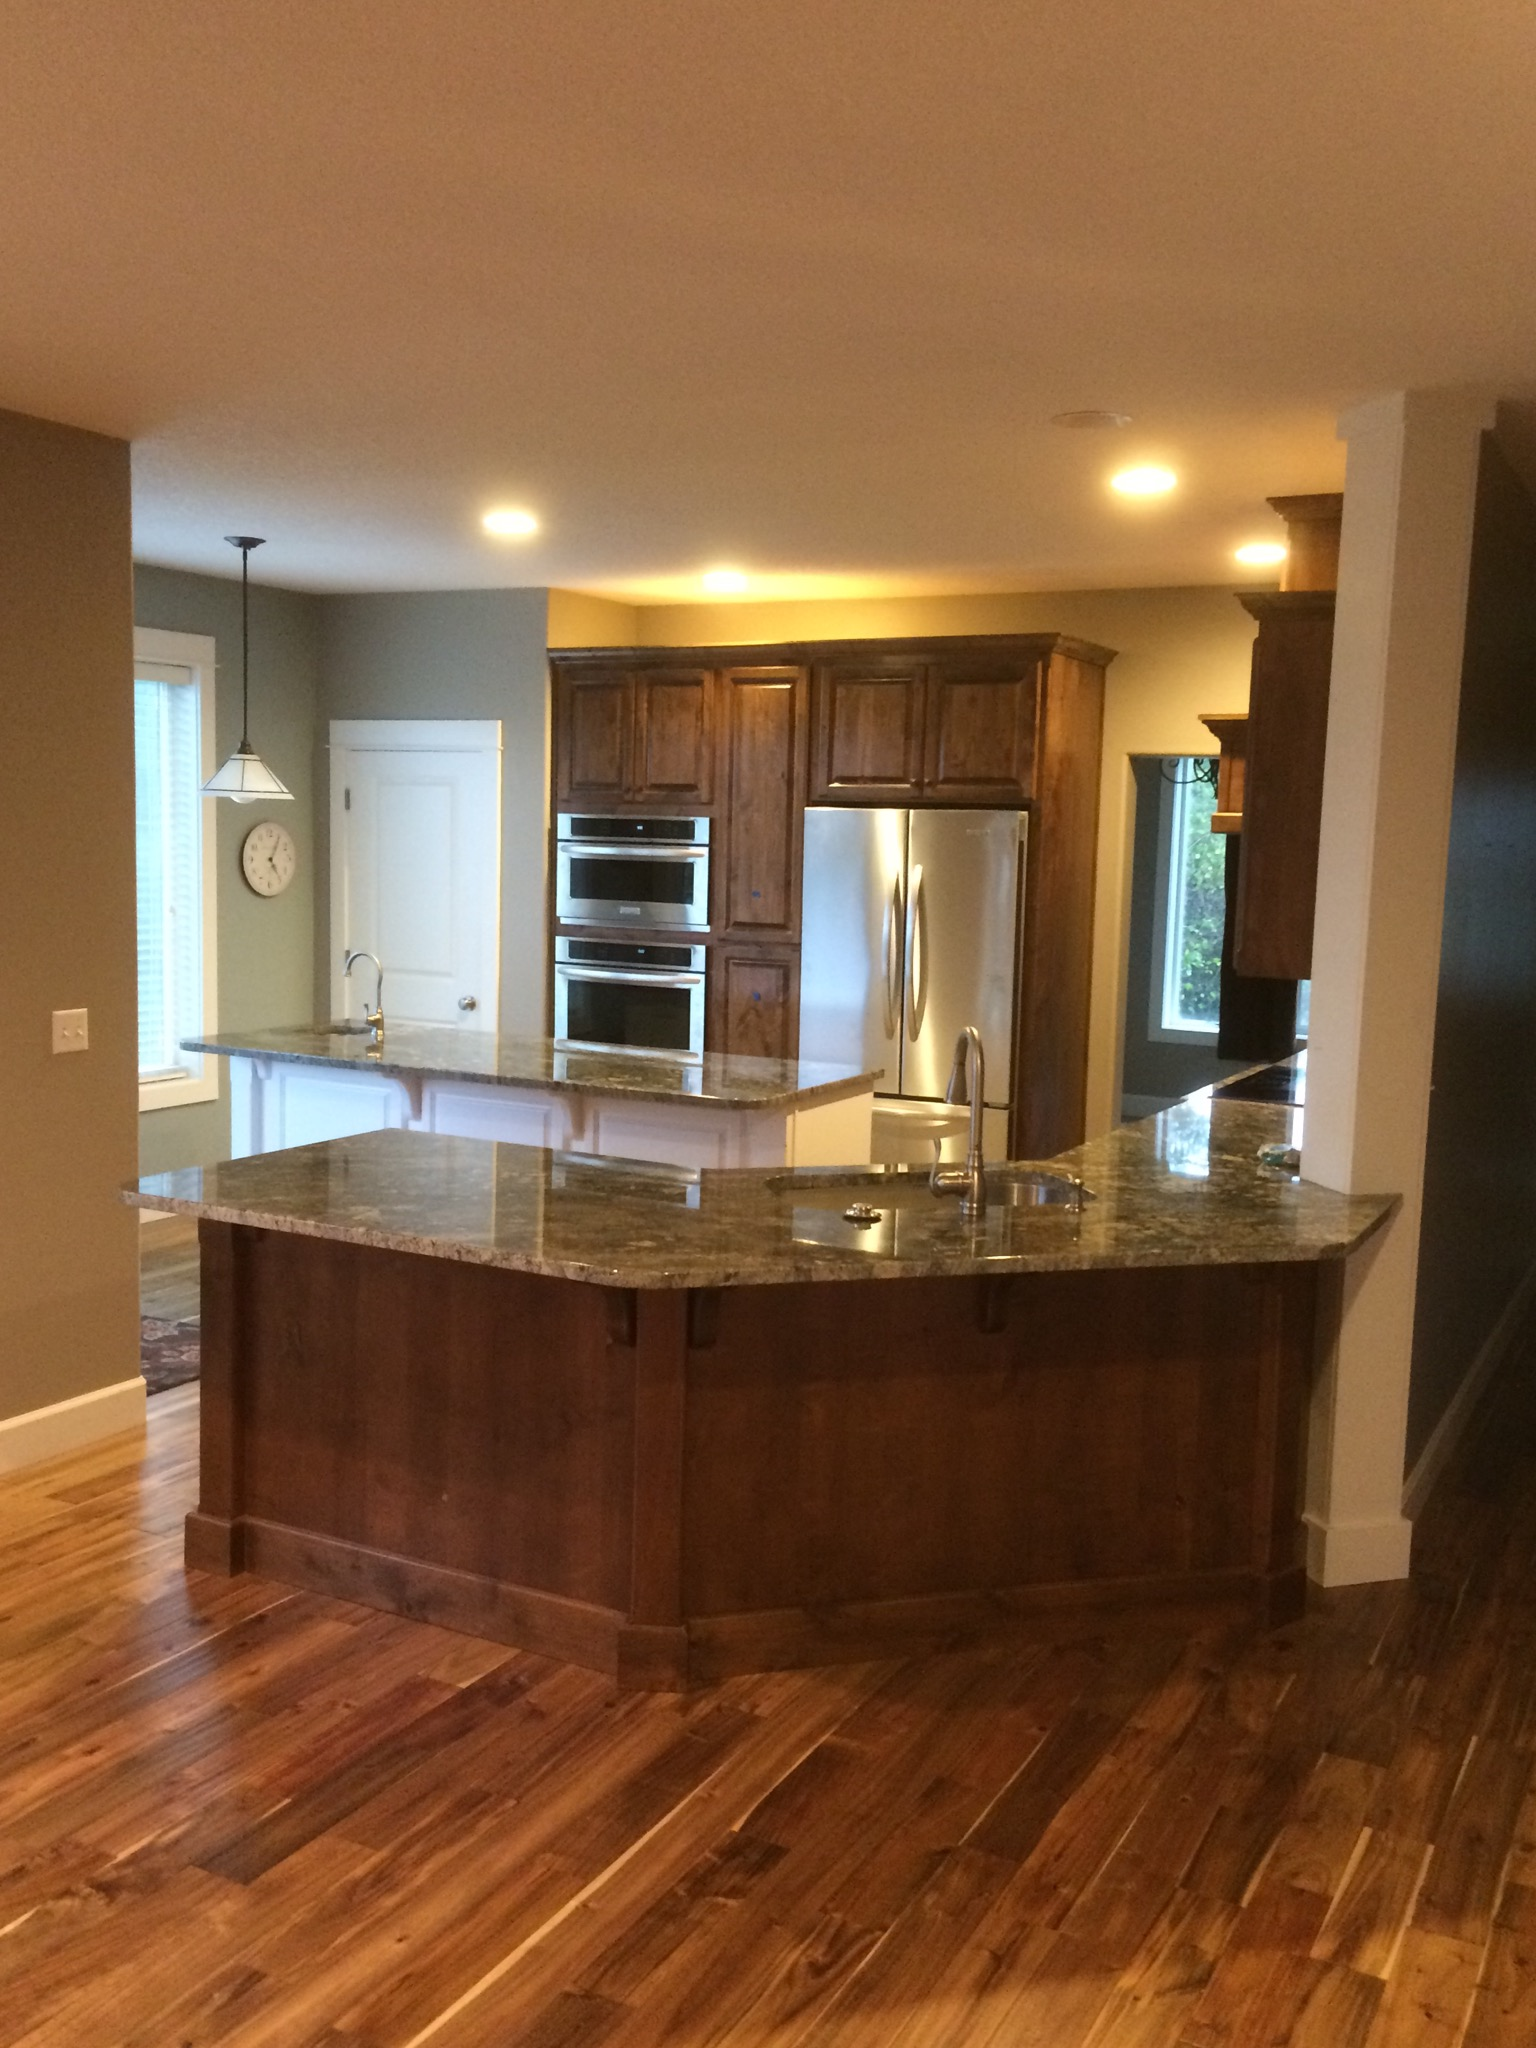 Livingston mt kitchen remodel indy construction llc for Kitchen wall island